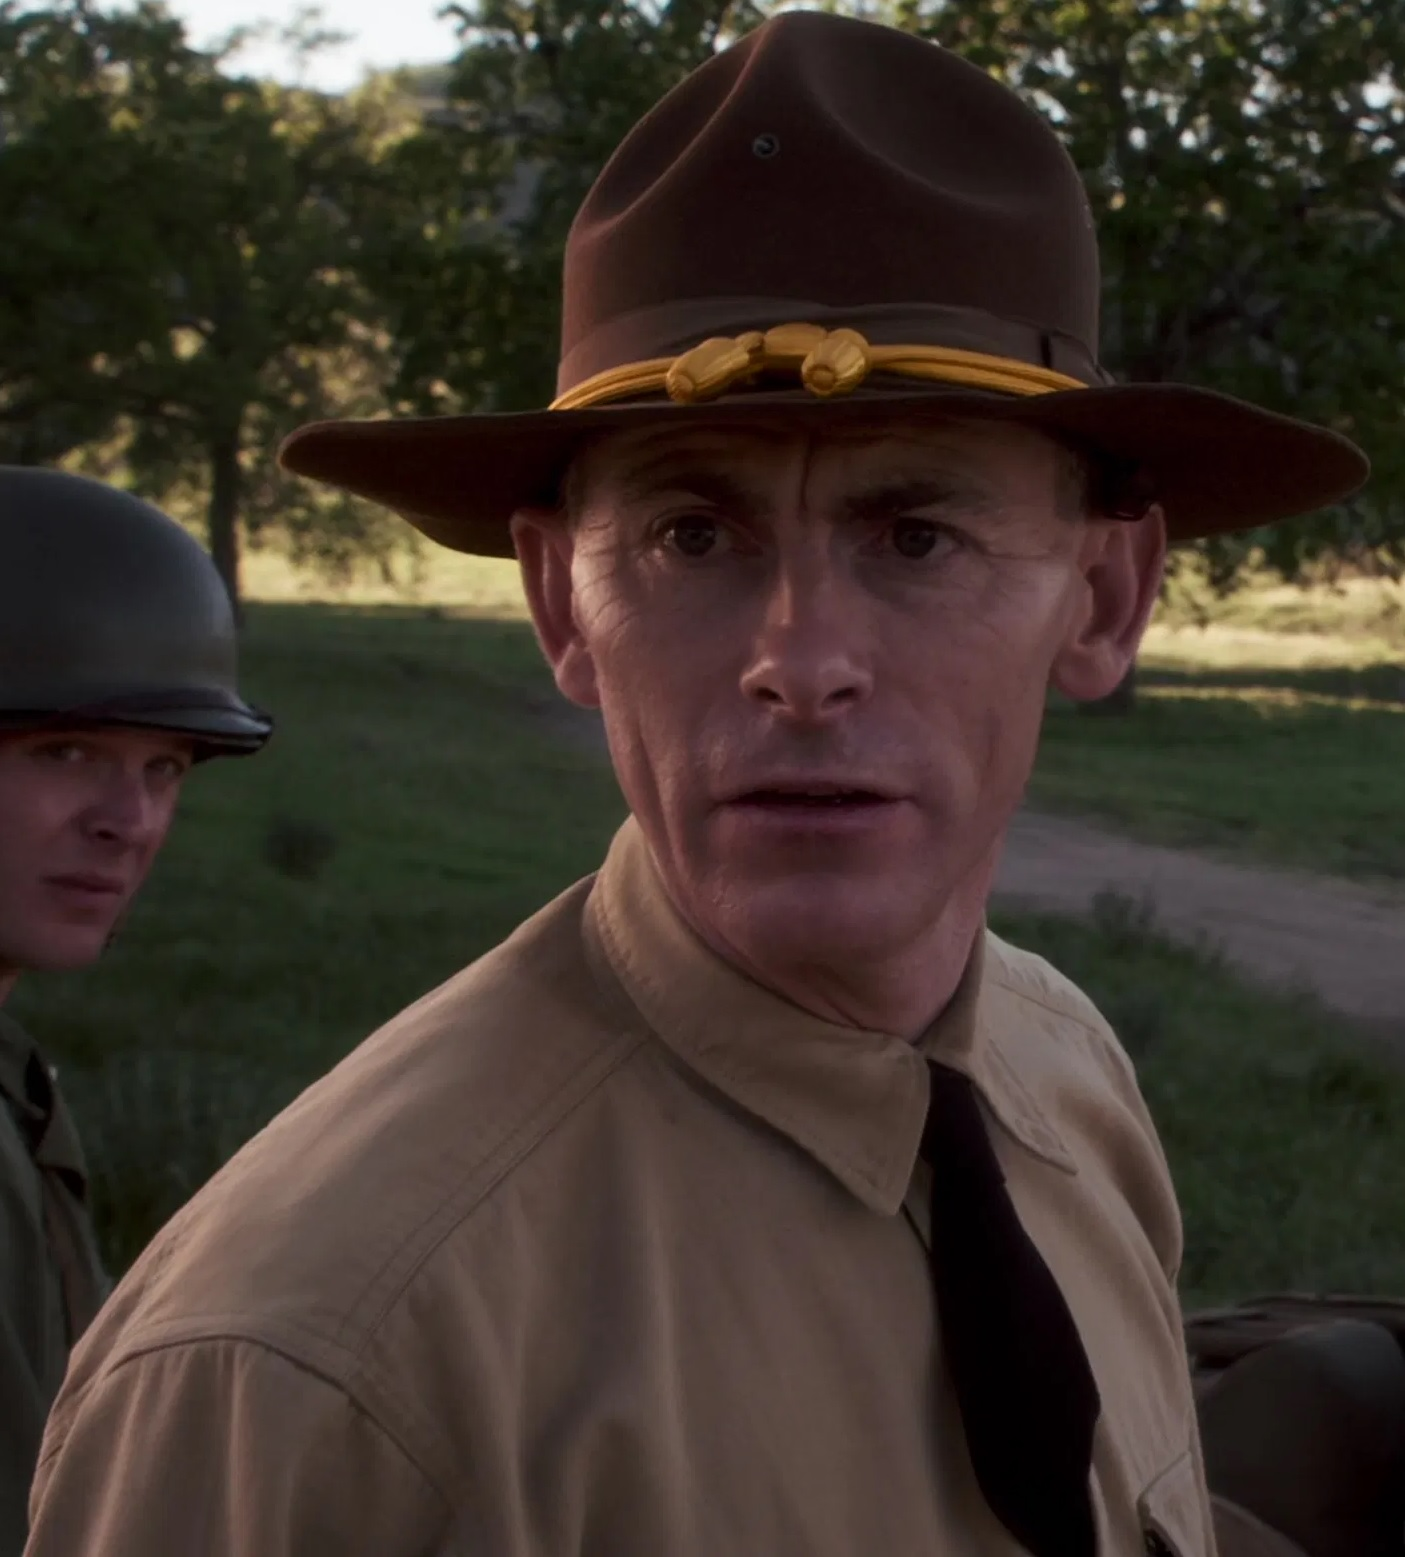 File:Sergeant duffy.jpg